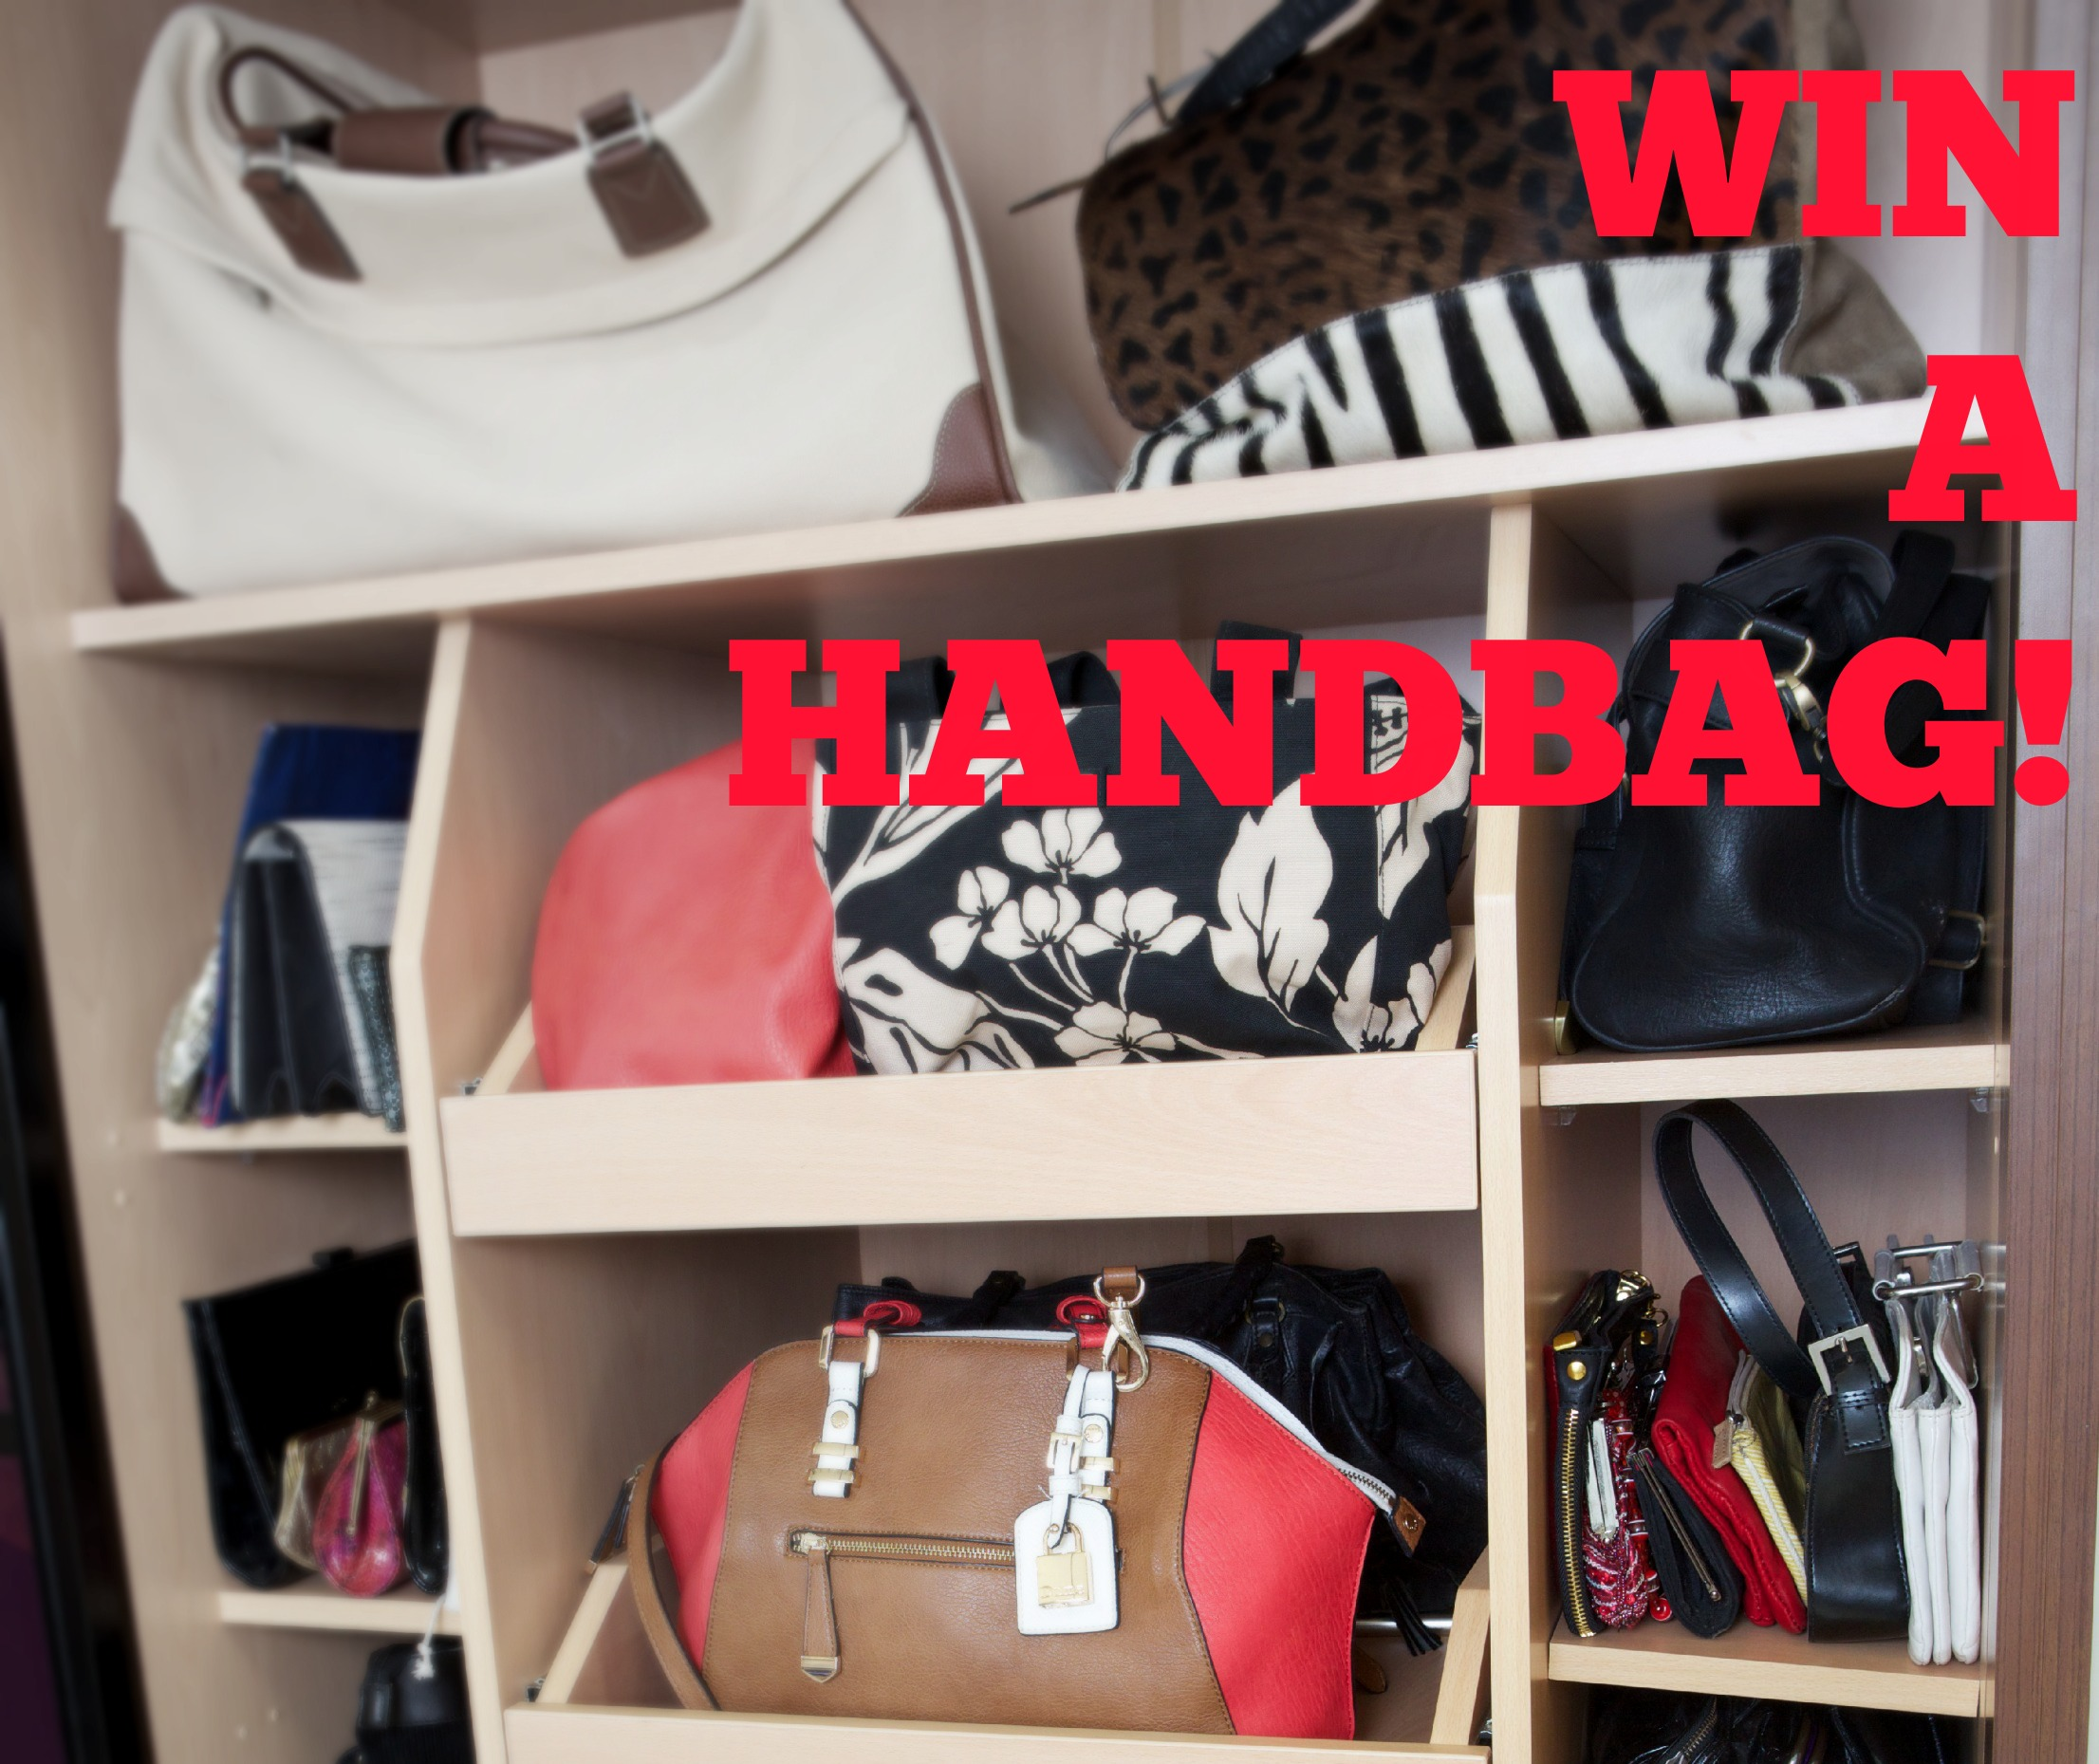 Win a handbag competition